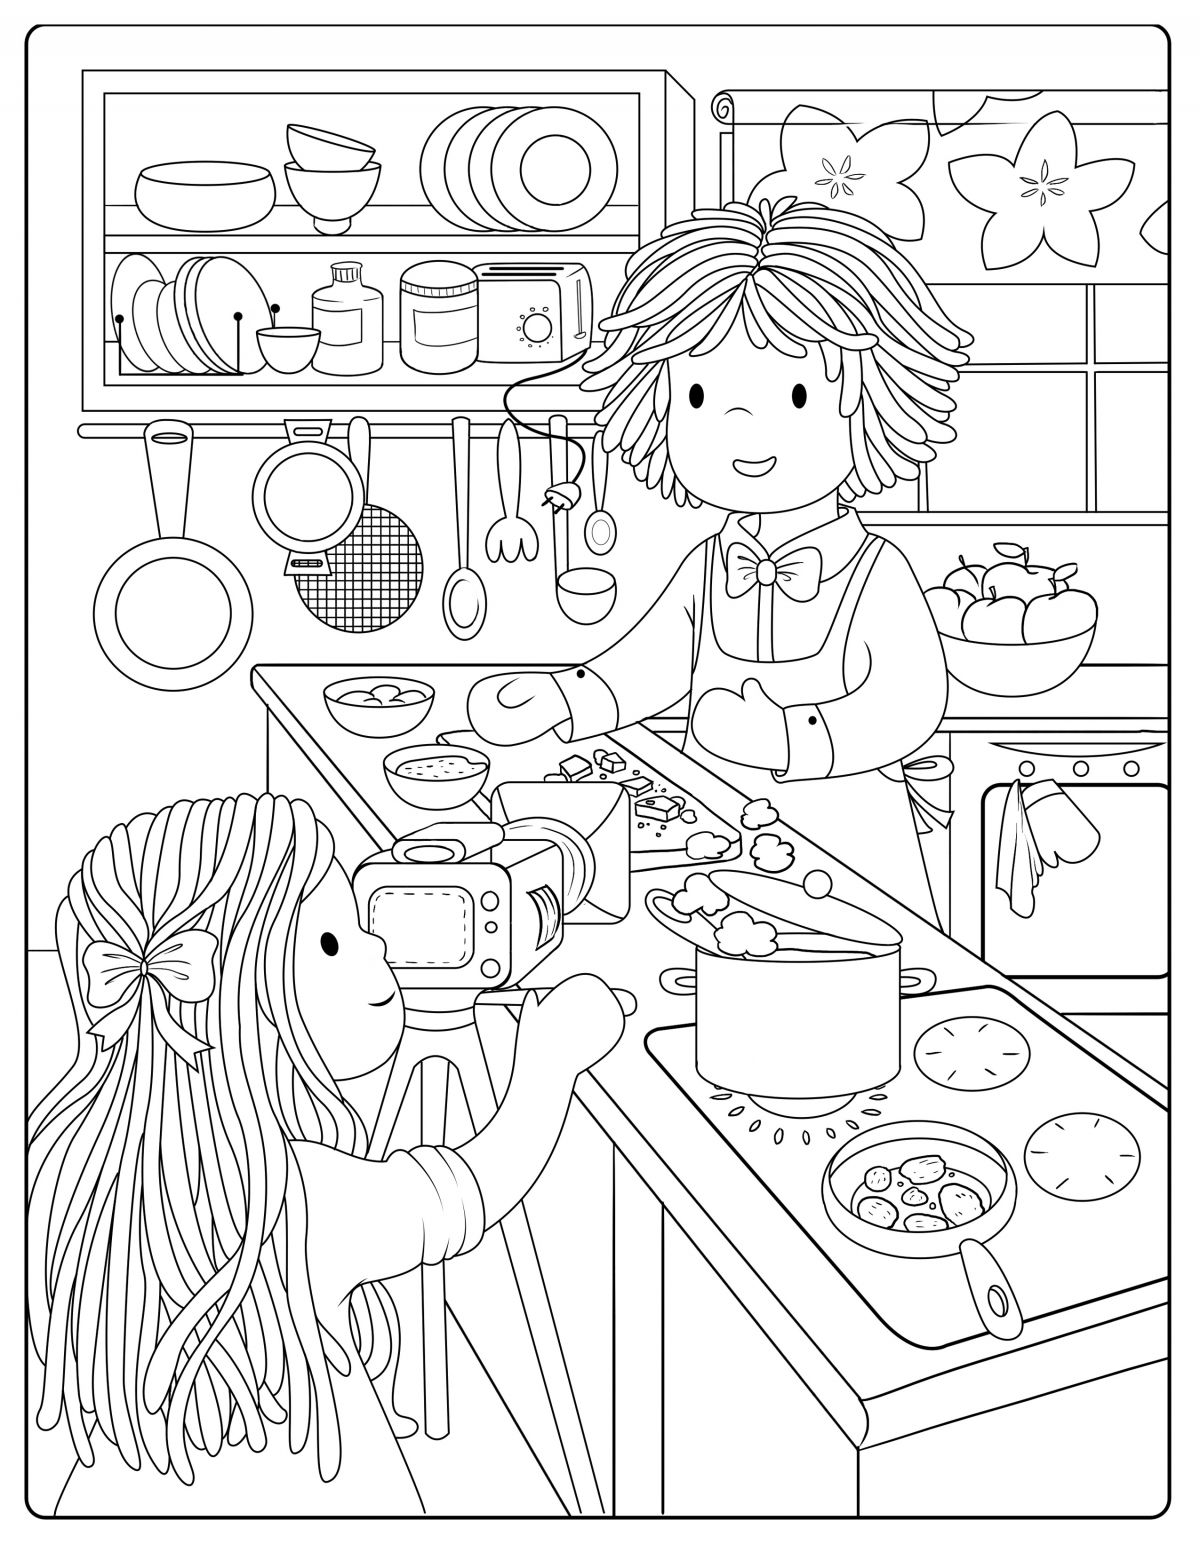 Cooking Show Colouring Page Coloring Pages Princess Coloring Pages Coloring Pages For Kids